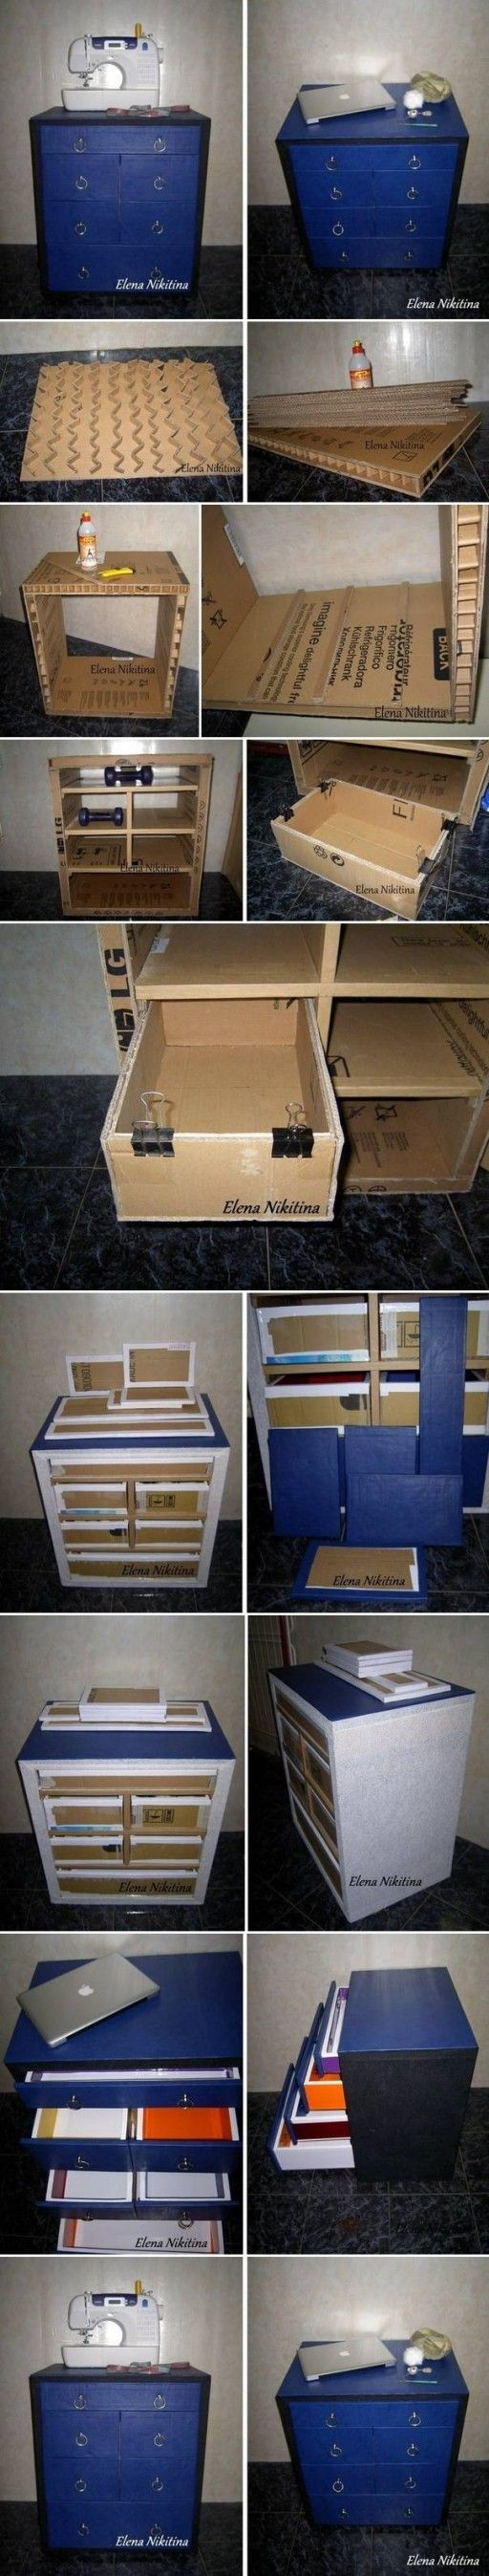 How to make Cardboard Chest with Drawers